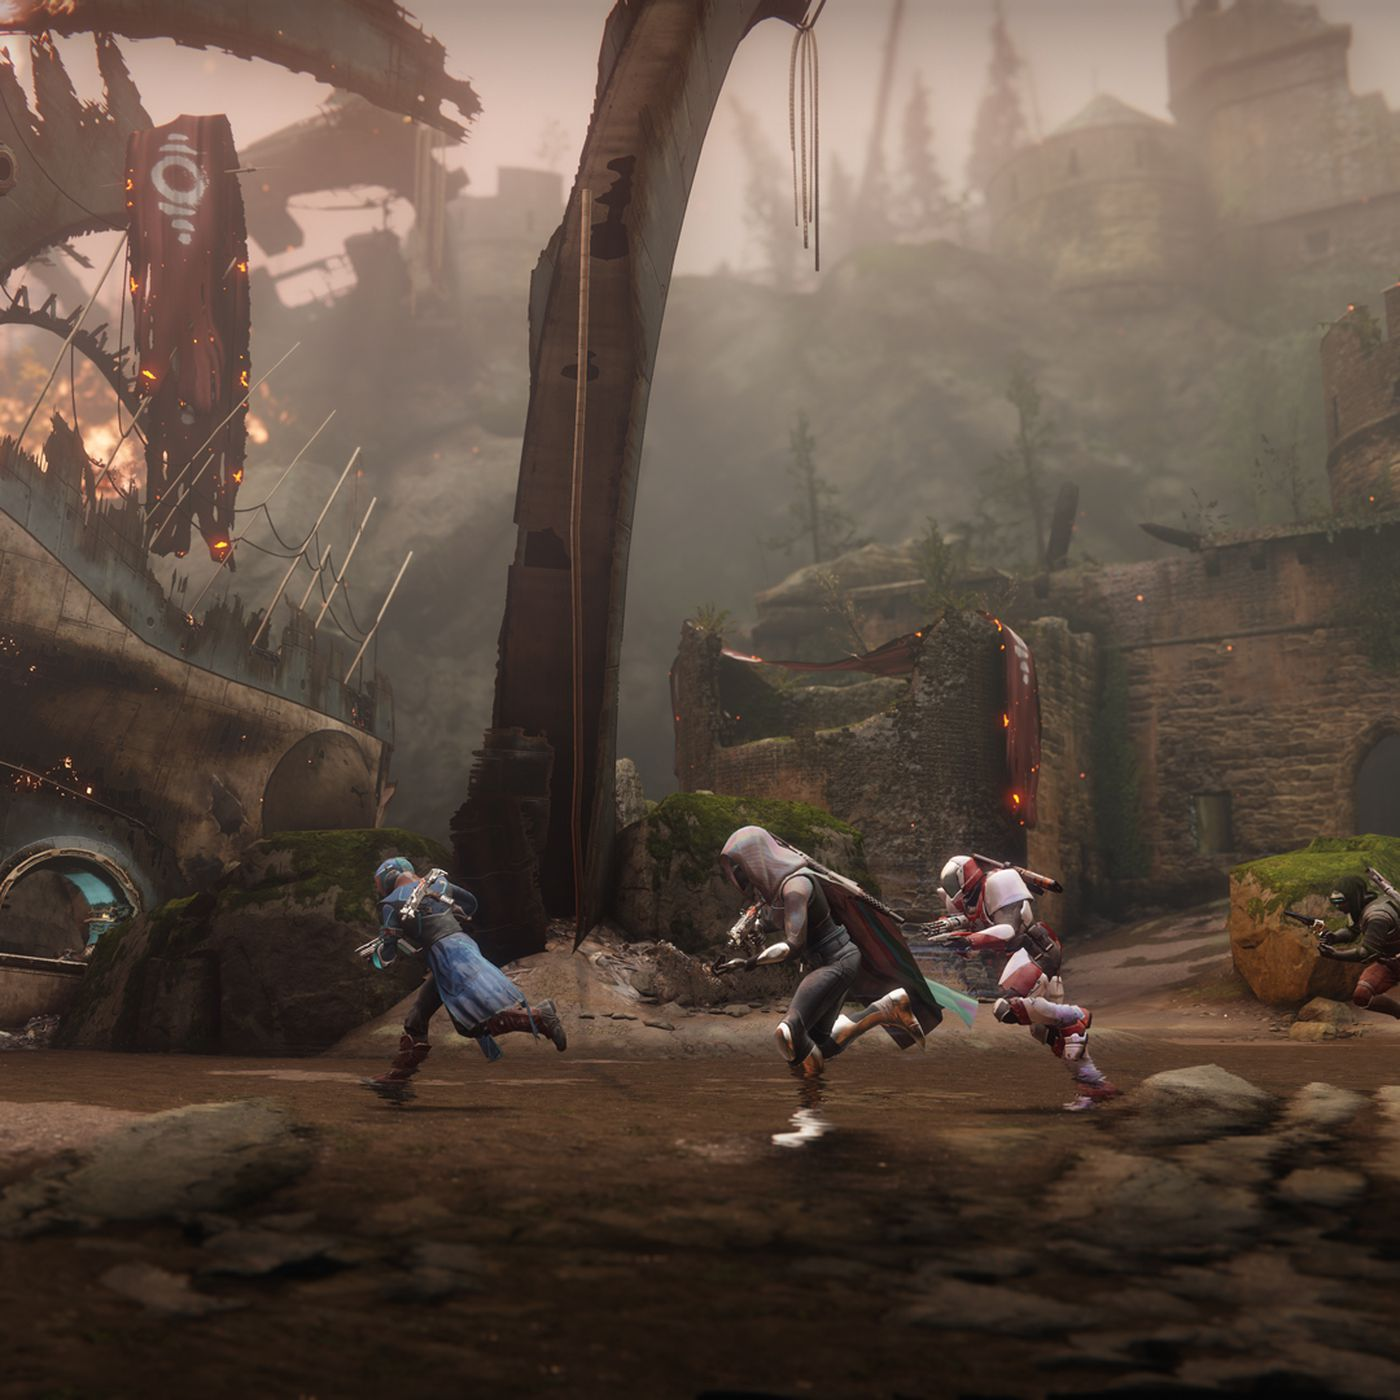 Destiny 2's multiplayer is far more balanced and fair, but